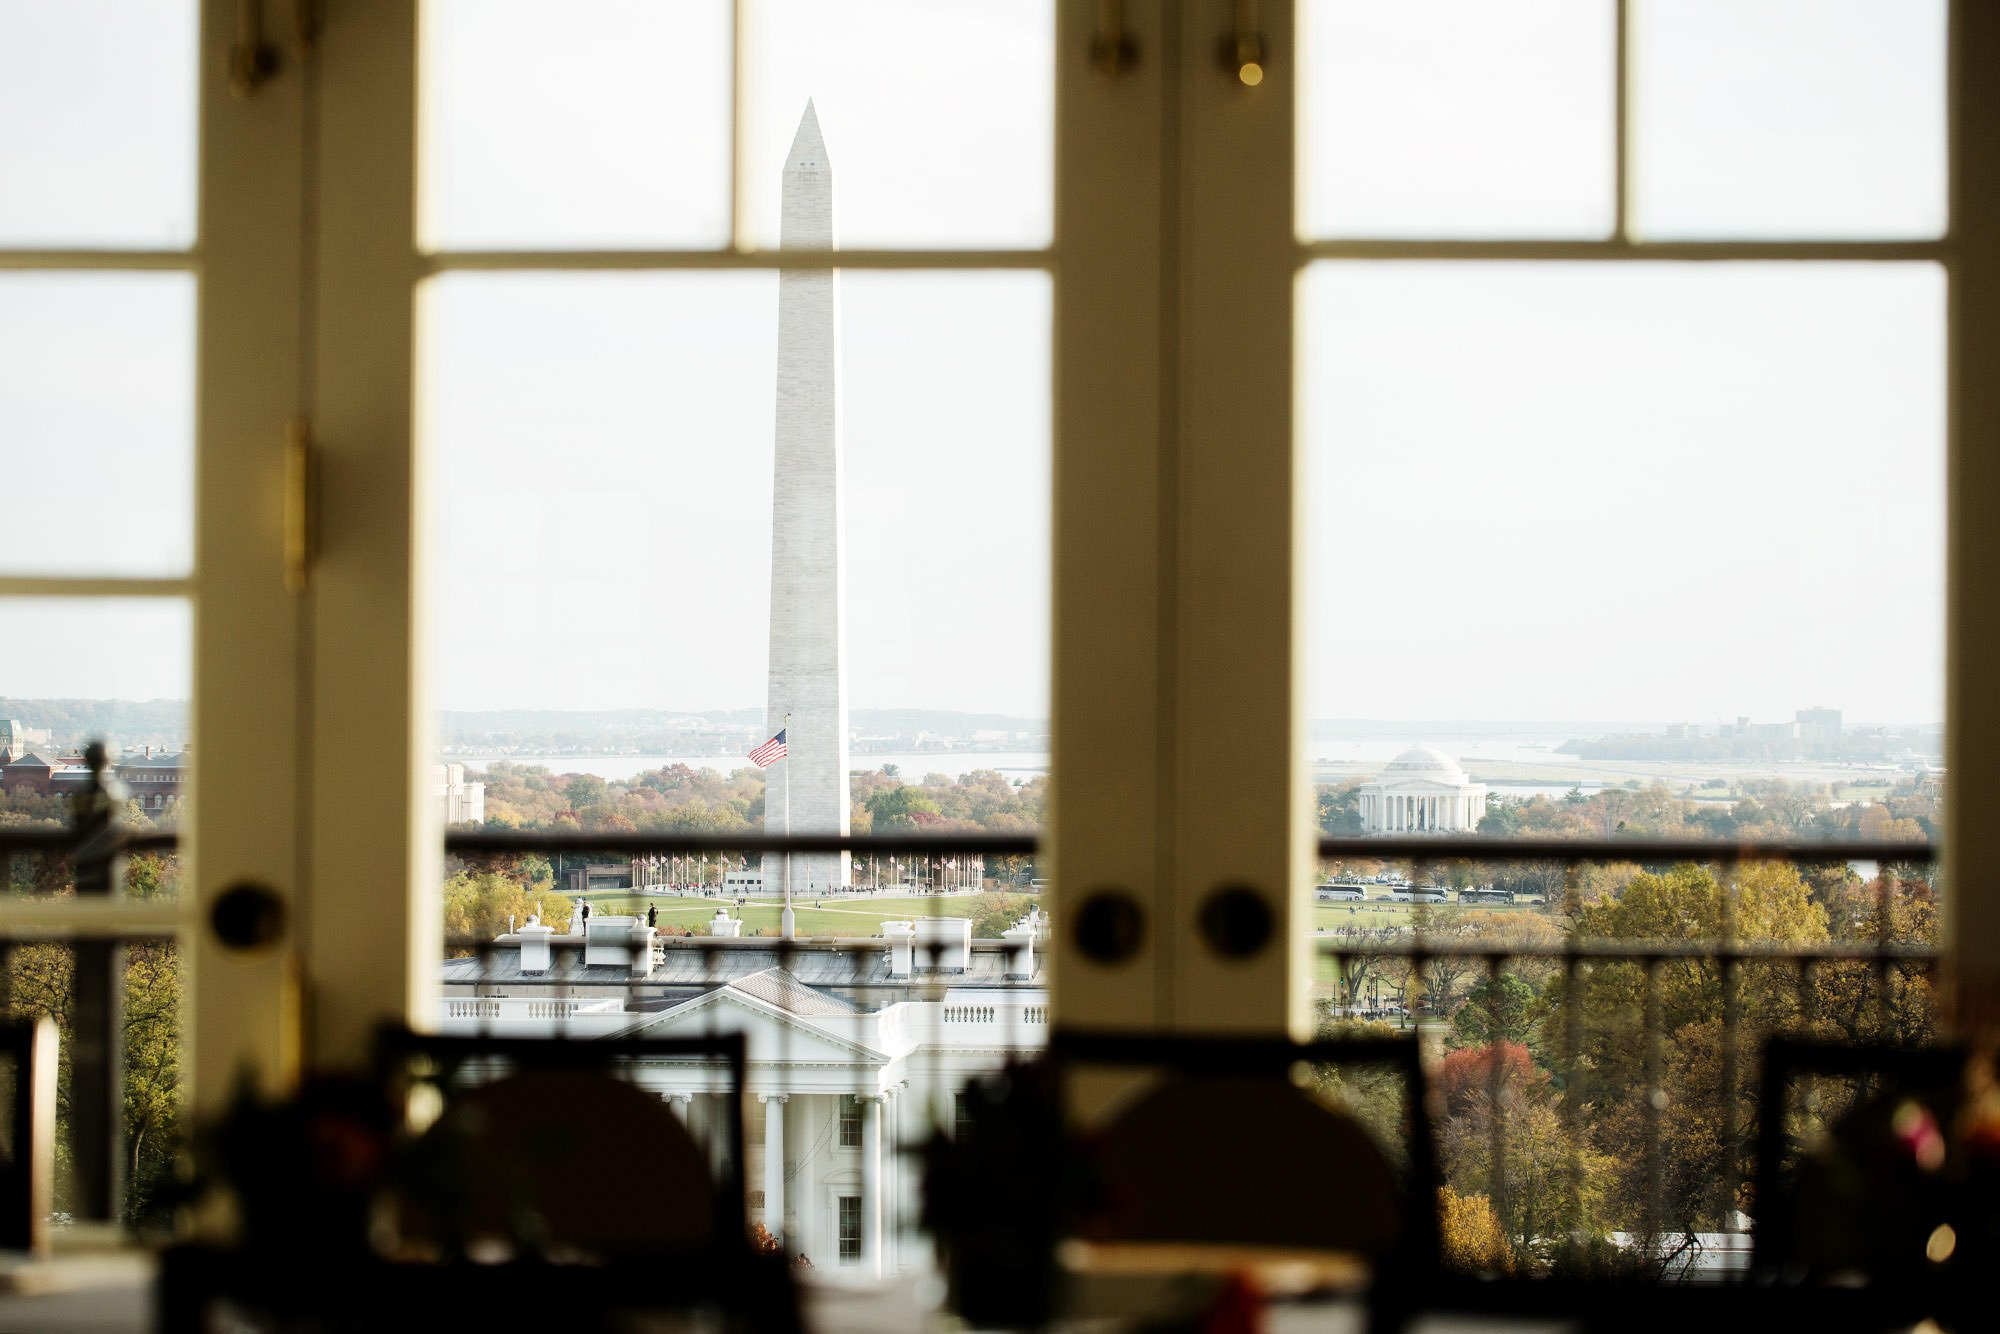 The view of the Washington Monument from the Hay Adams Hotel.